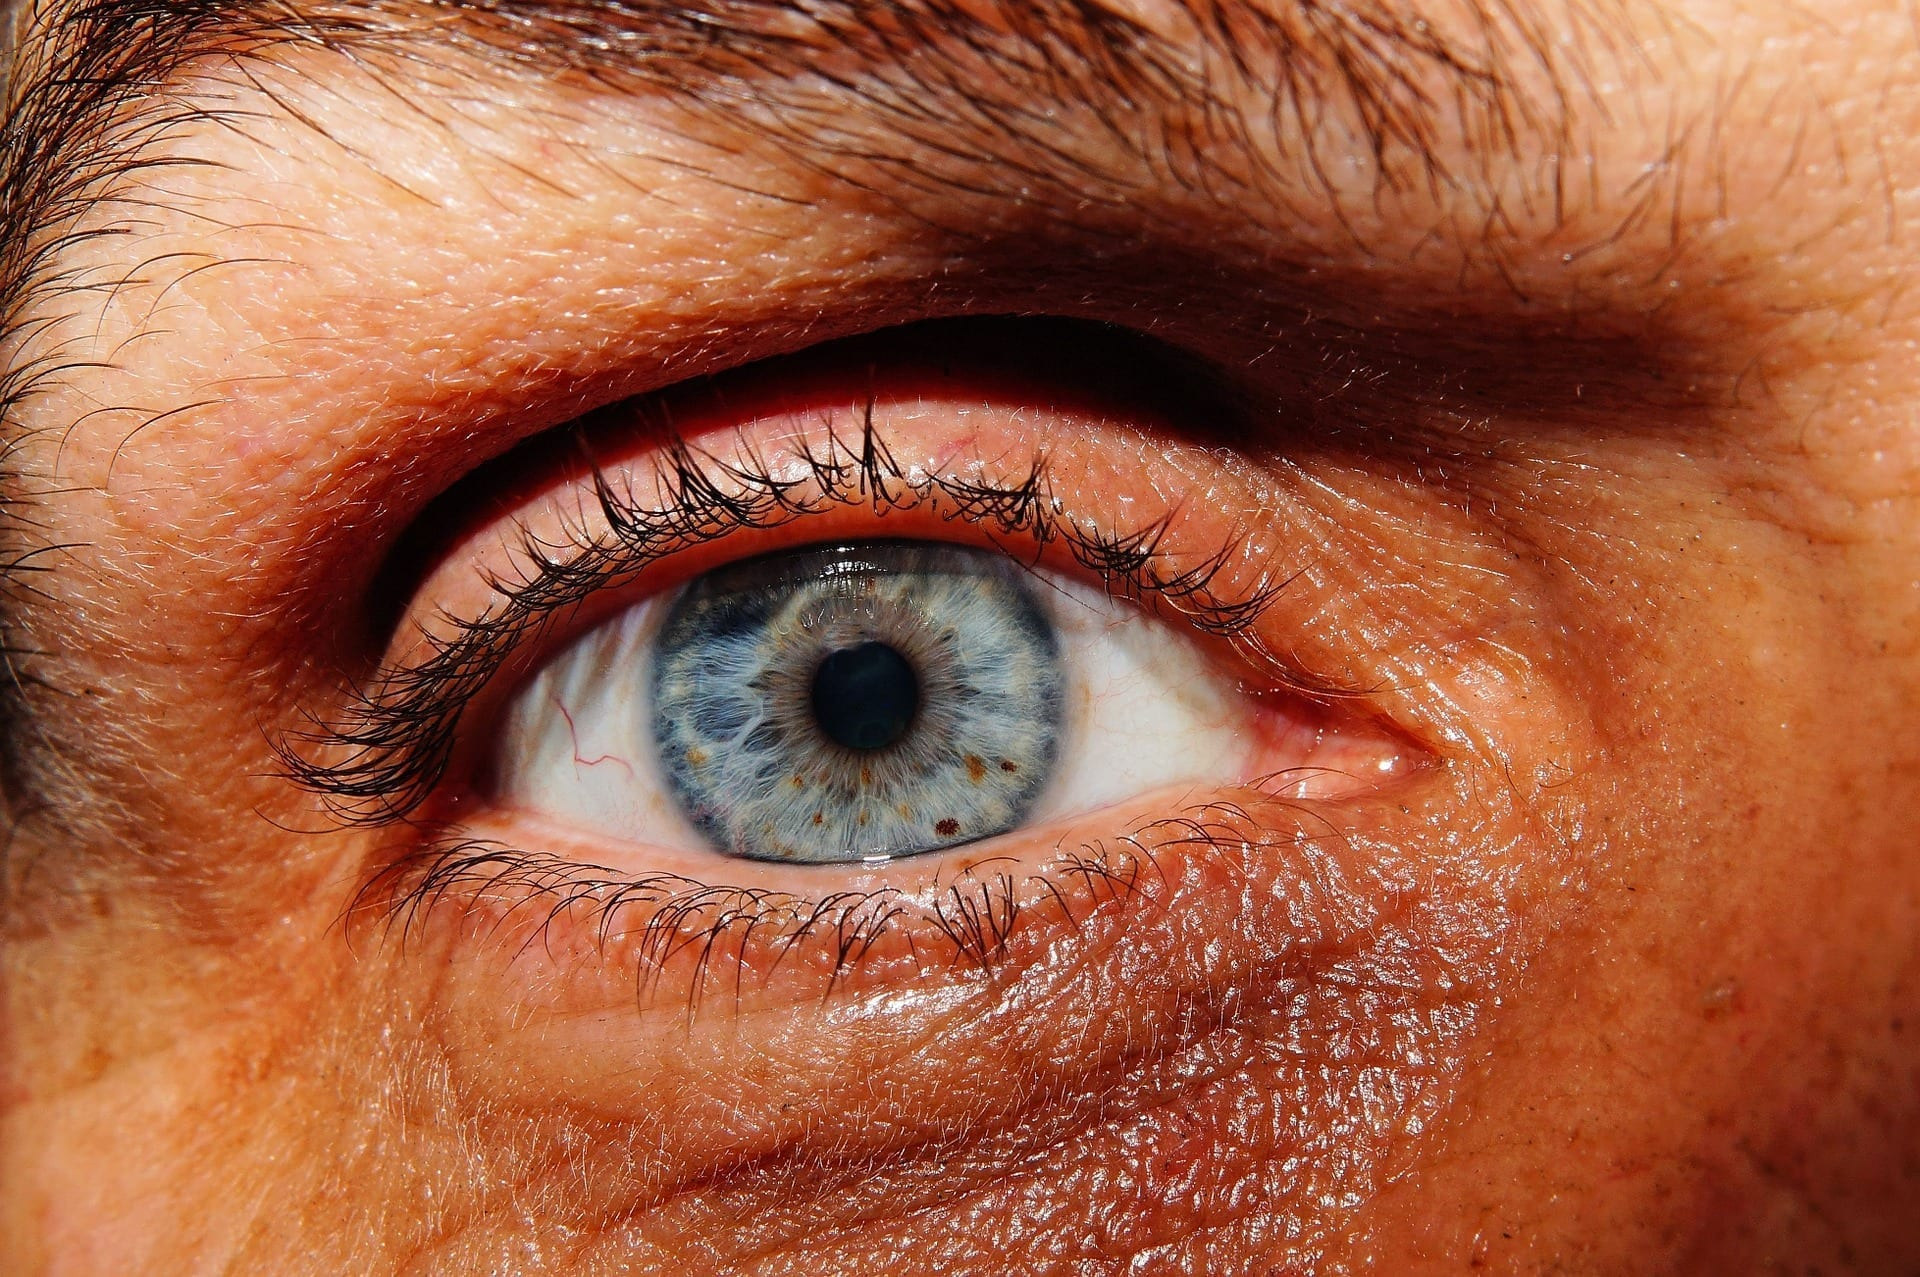 Man's eye; image by Kapa65, via Pixabay, CC0.